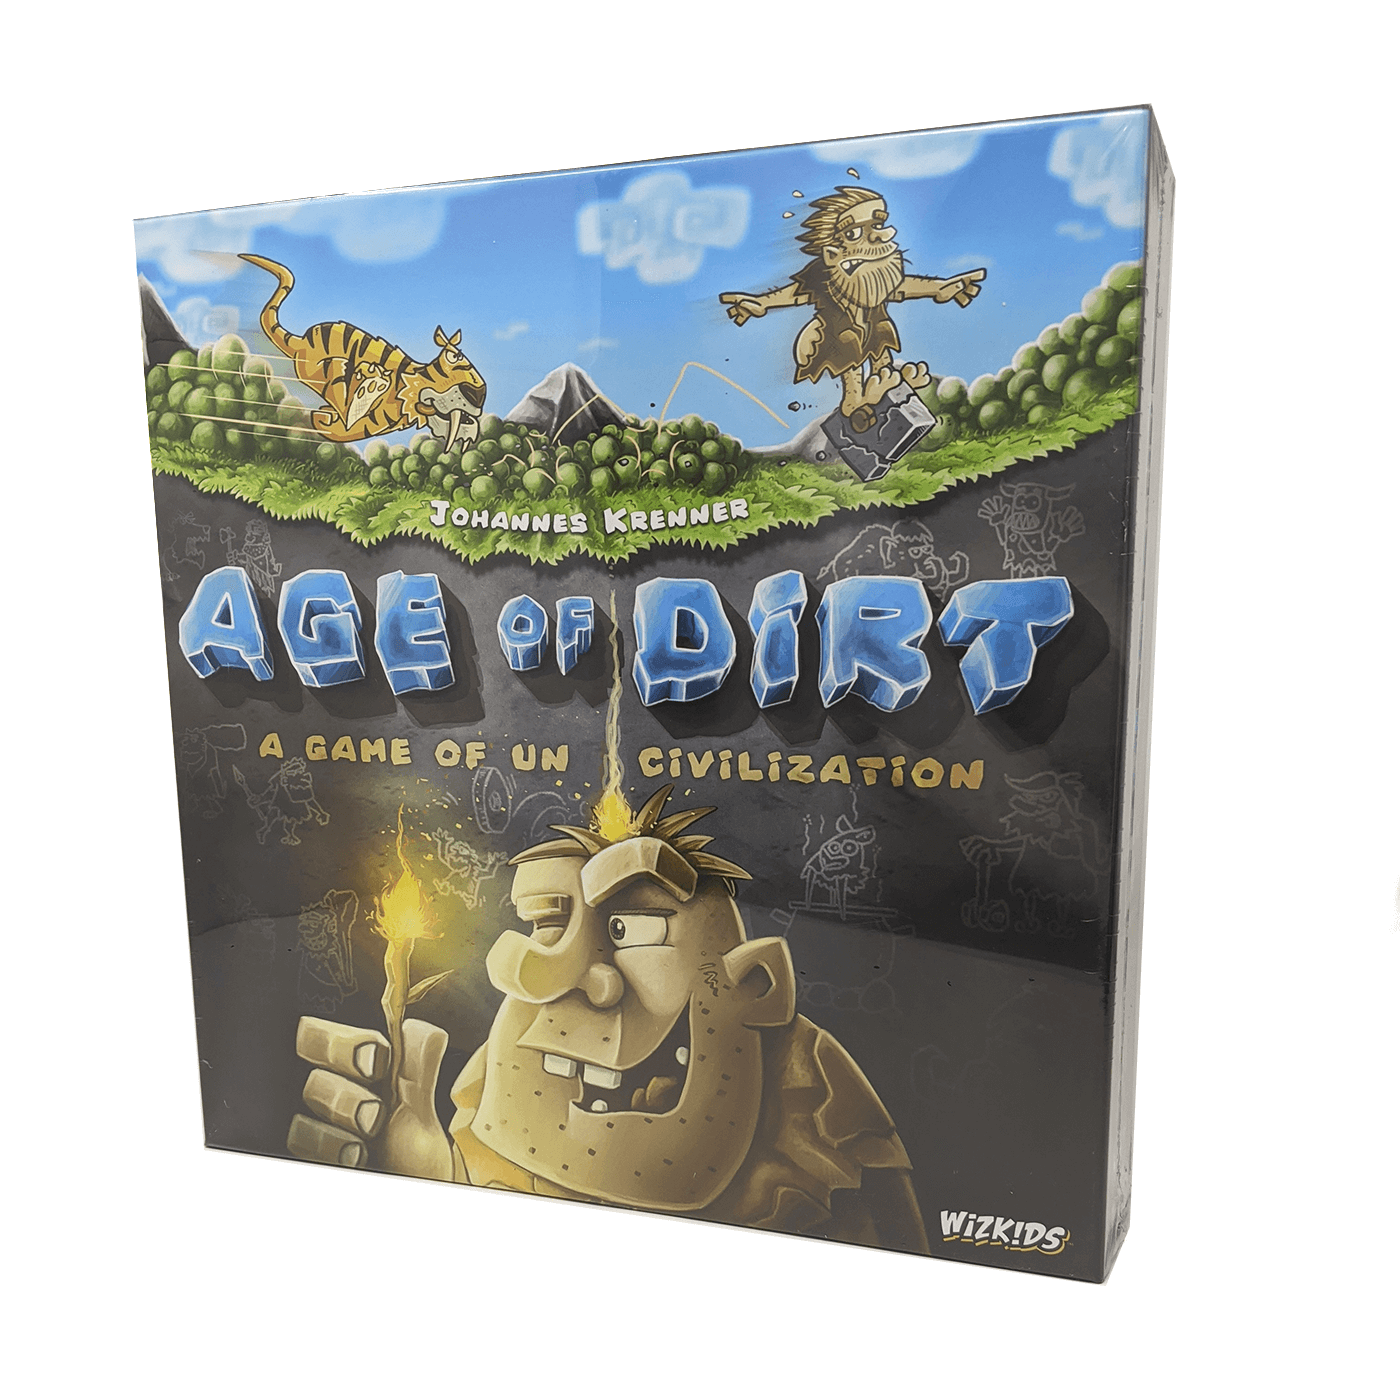 Age of Dirt: A game of un-civilization box front: one caveman runs from a tiger while another lights his hair on fire